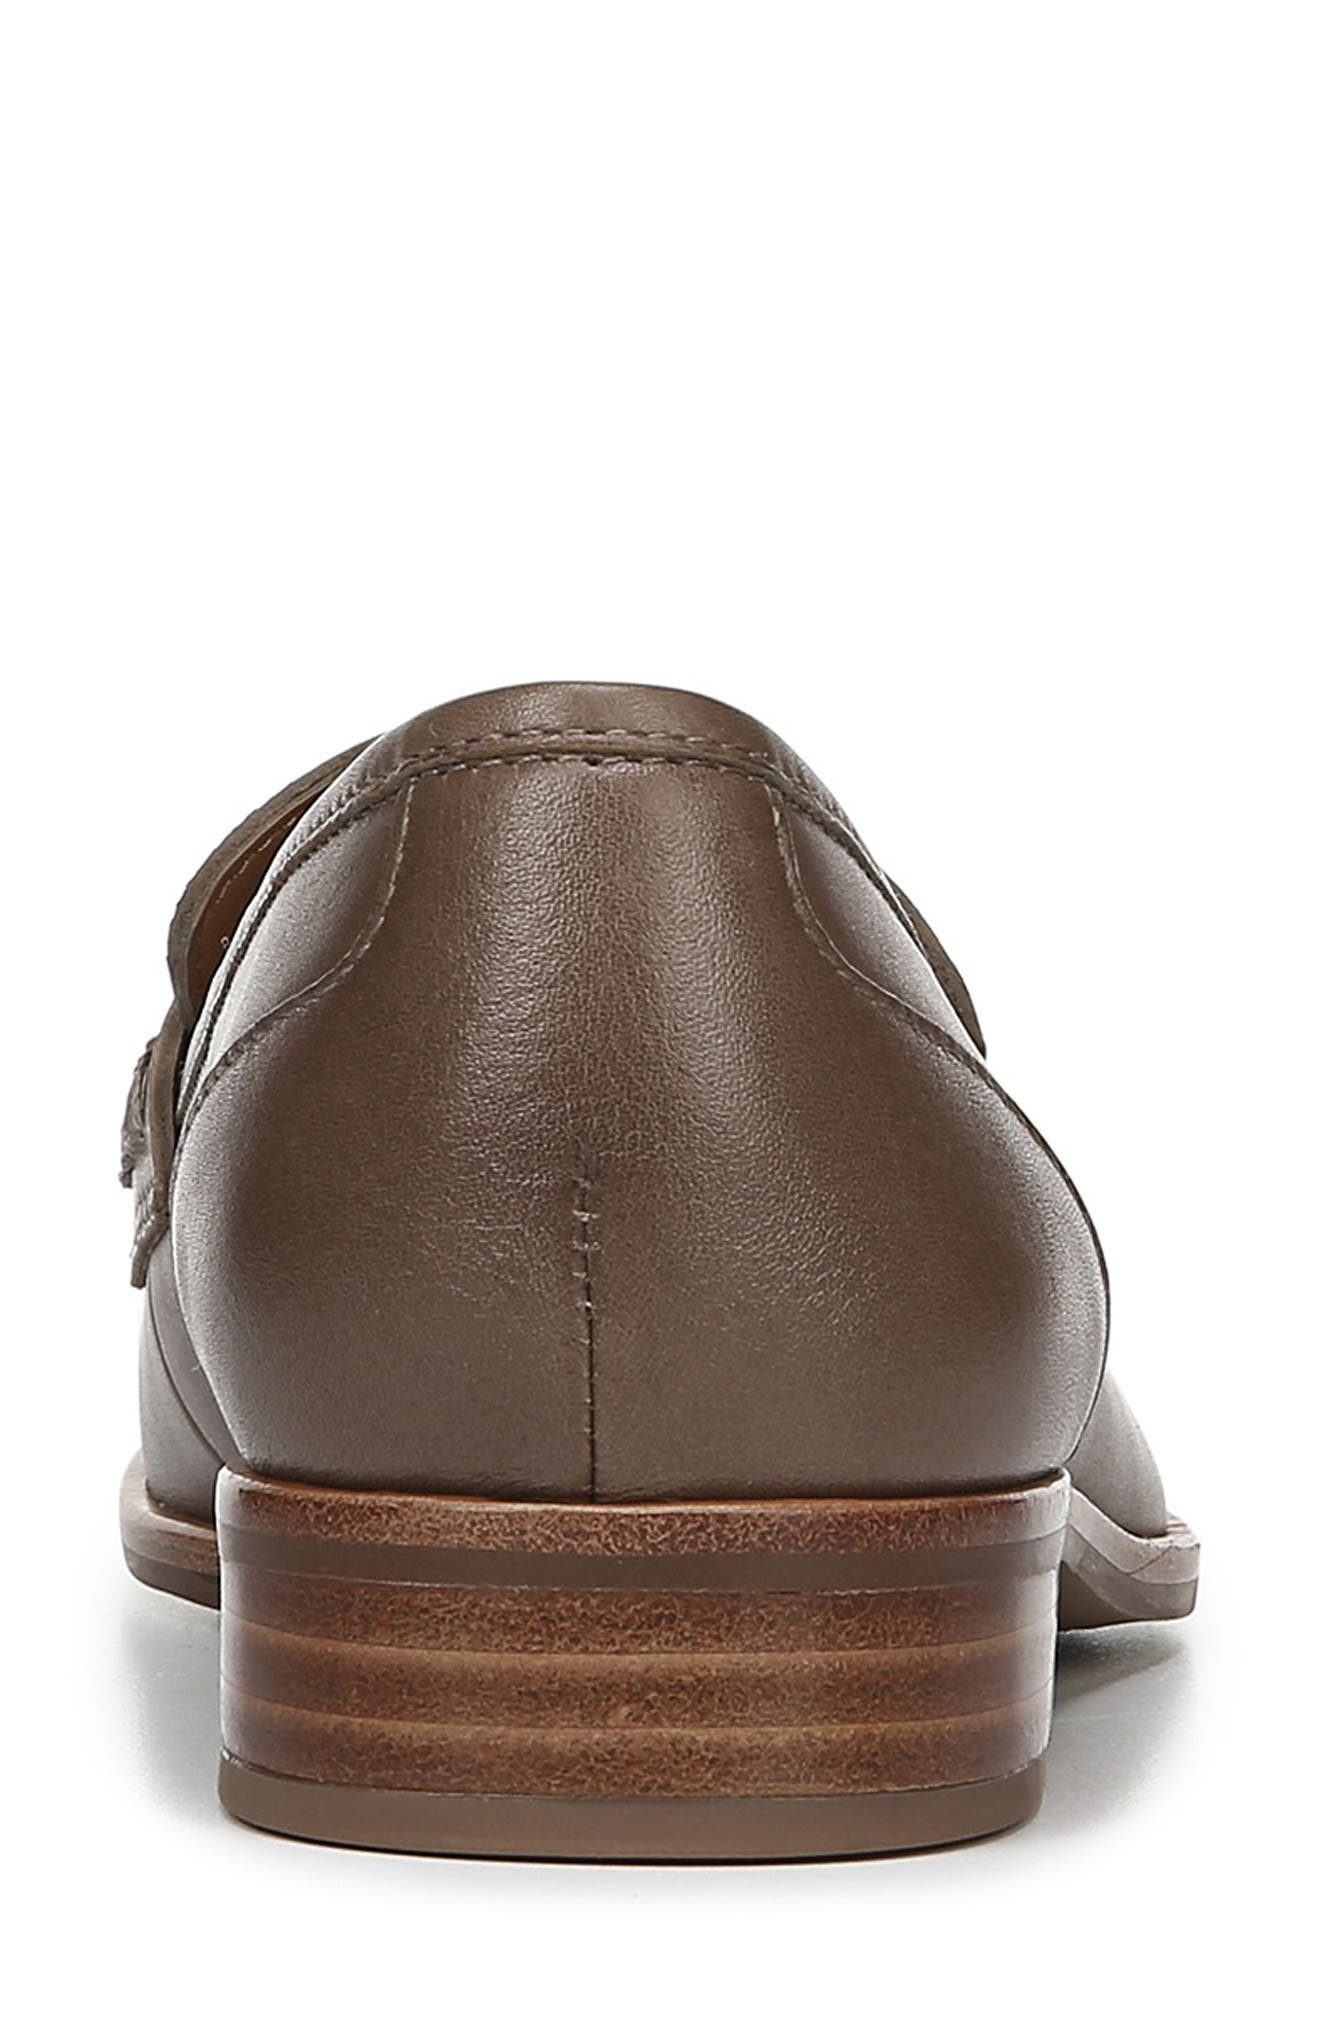 SARTO BY FRANCO SARTO,                             'Jolette' Penny Loafer,                             Alternate thumbnail 7, color,                             DARK PUTTY LEATHER